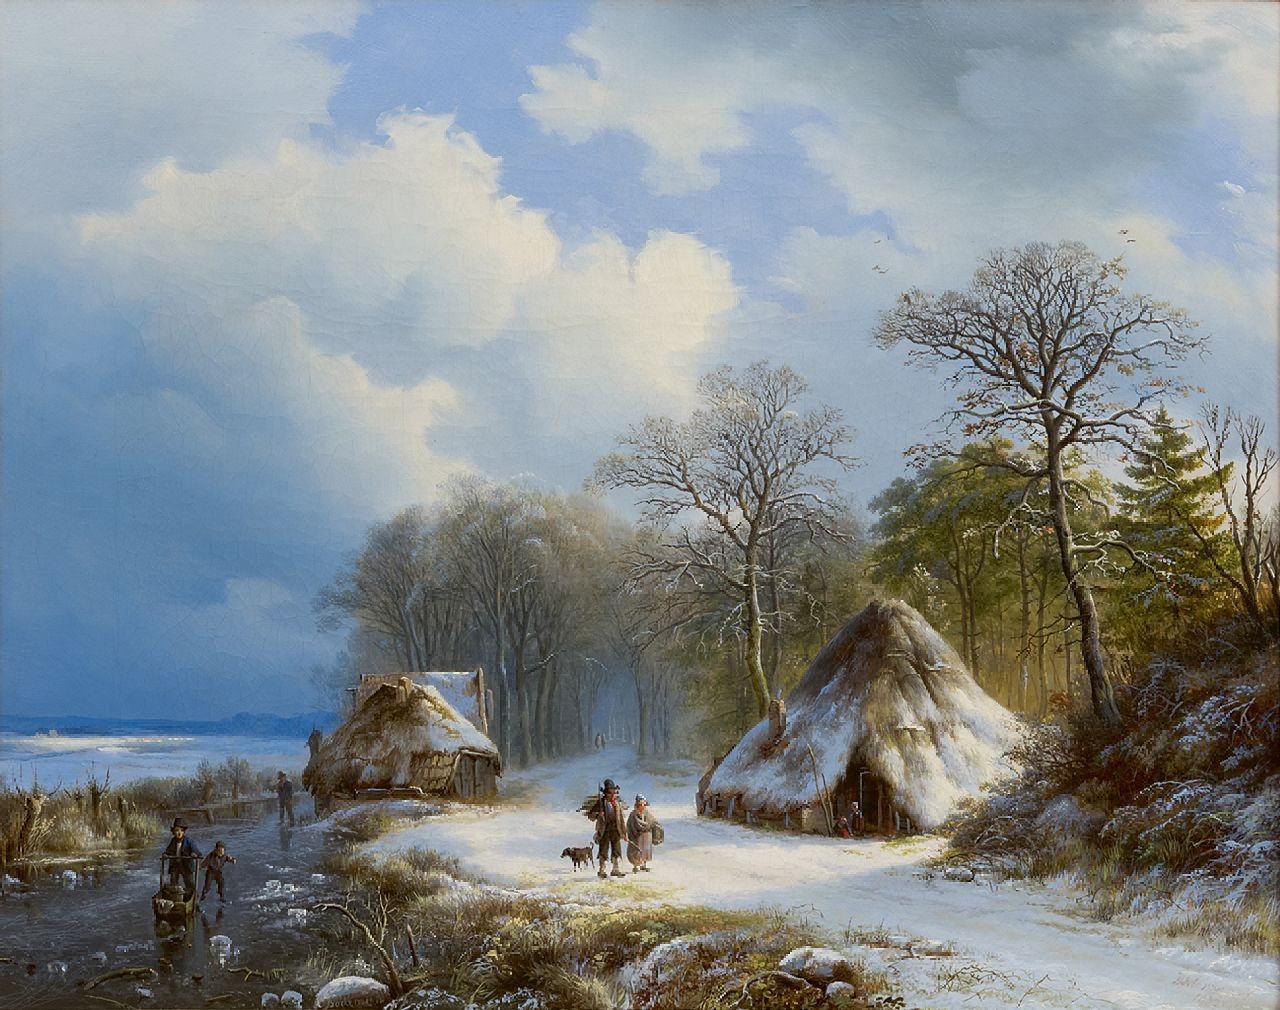 Bodeman W.  | Willem Bodeman | Paintings offered for sale | A winter landscape with skaters and wood gatherers, oil on canvas 43.0 x 54.0 cm, signed l.c. and l.r. (indistinctly) and dated '38 and 1838